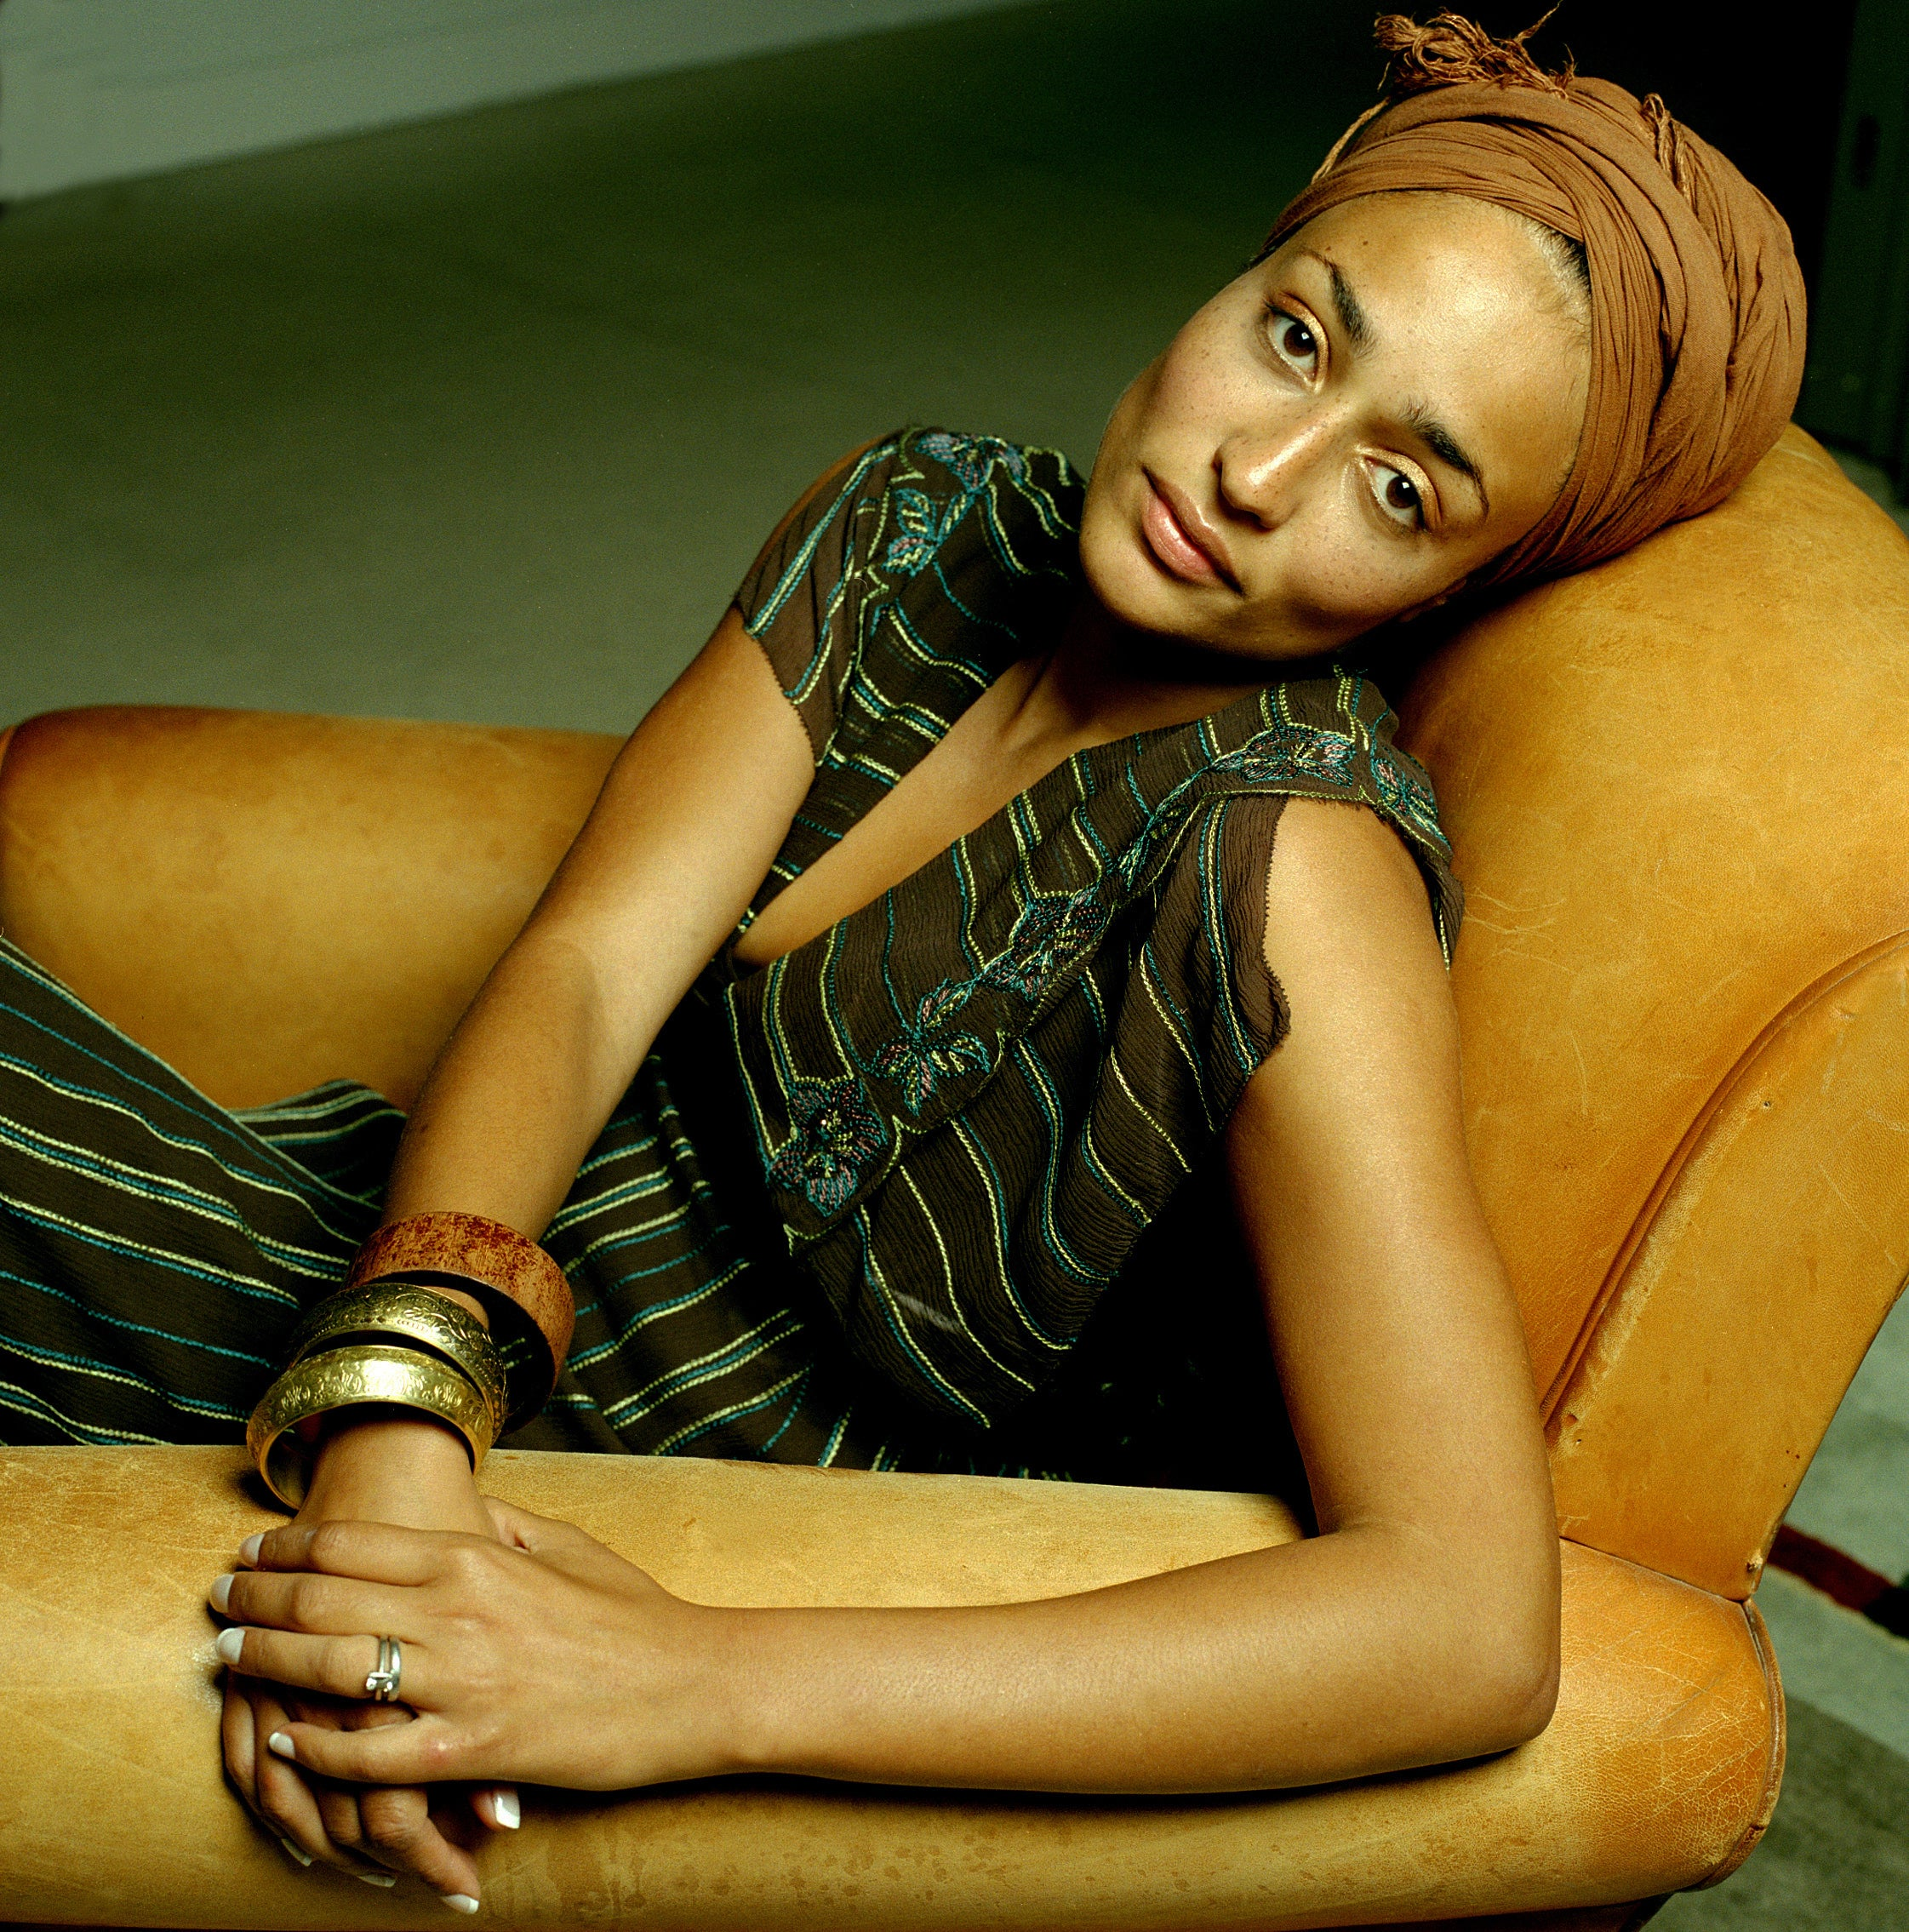 Why Zadie Smith Should Think Twice About Shaming Women Who Care About Makeup